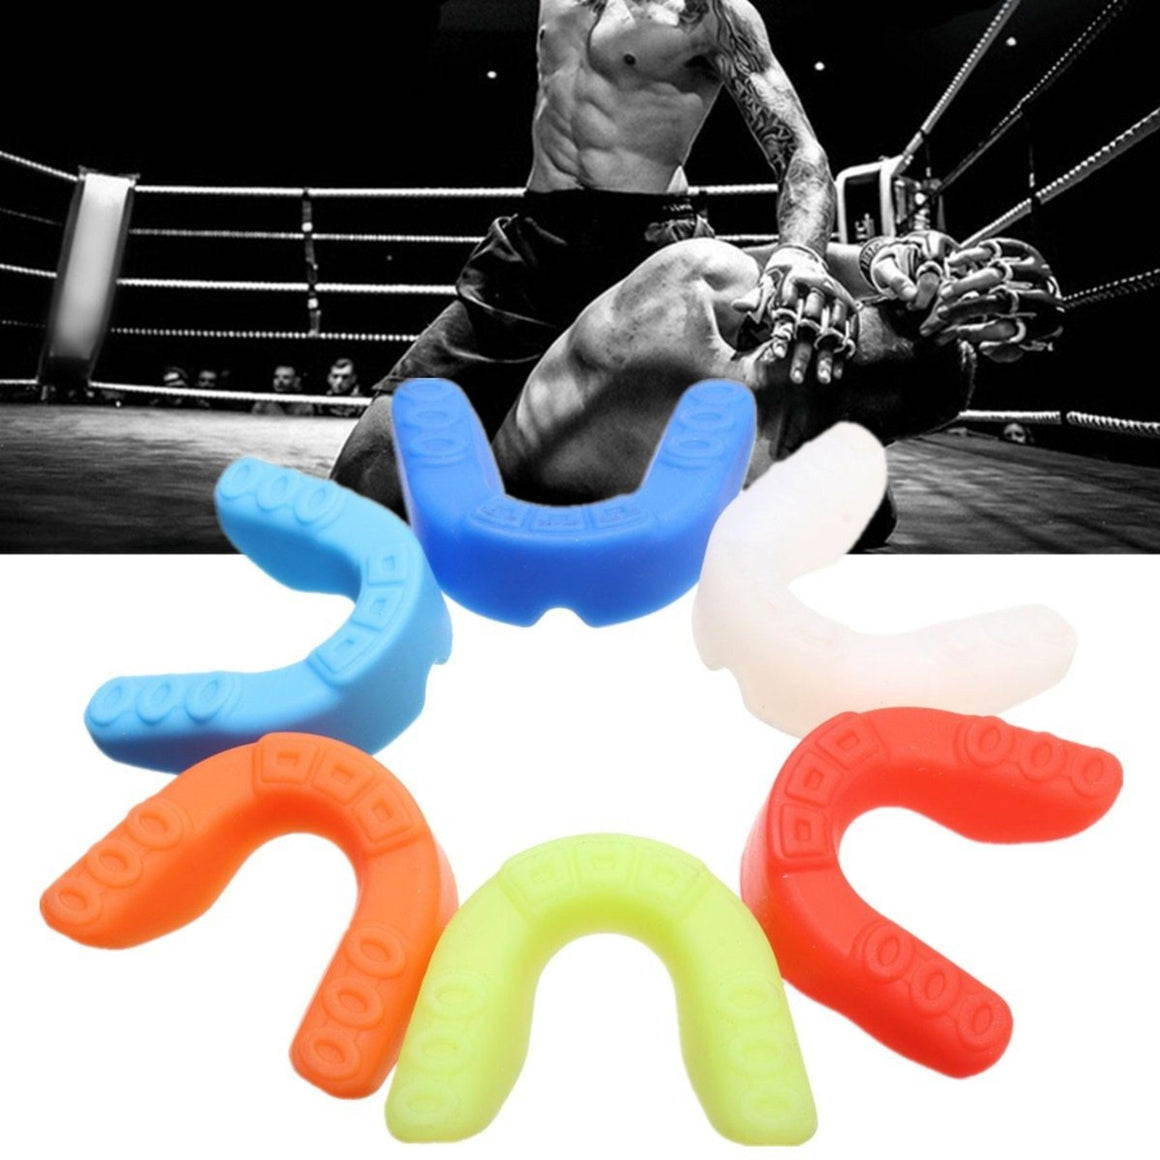 Fitness Sports Mouthguard Mouth Guard Teeth Protector For Boxing MMA Football Basketball Karate Muay Thai Safety Protection